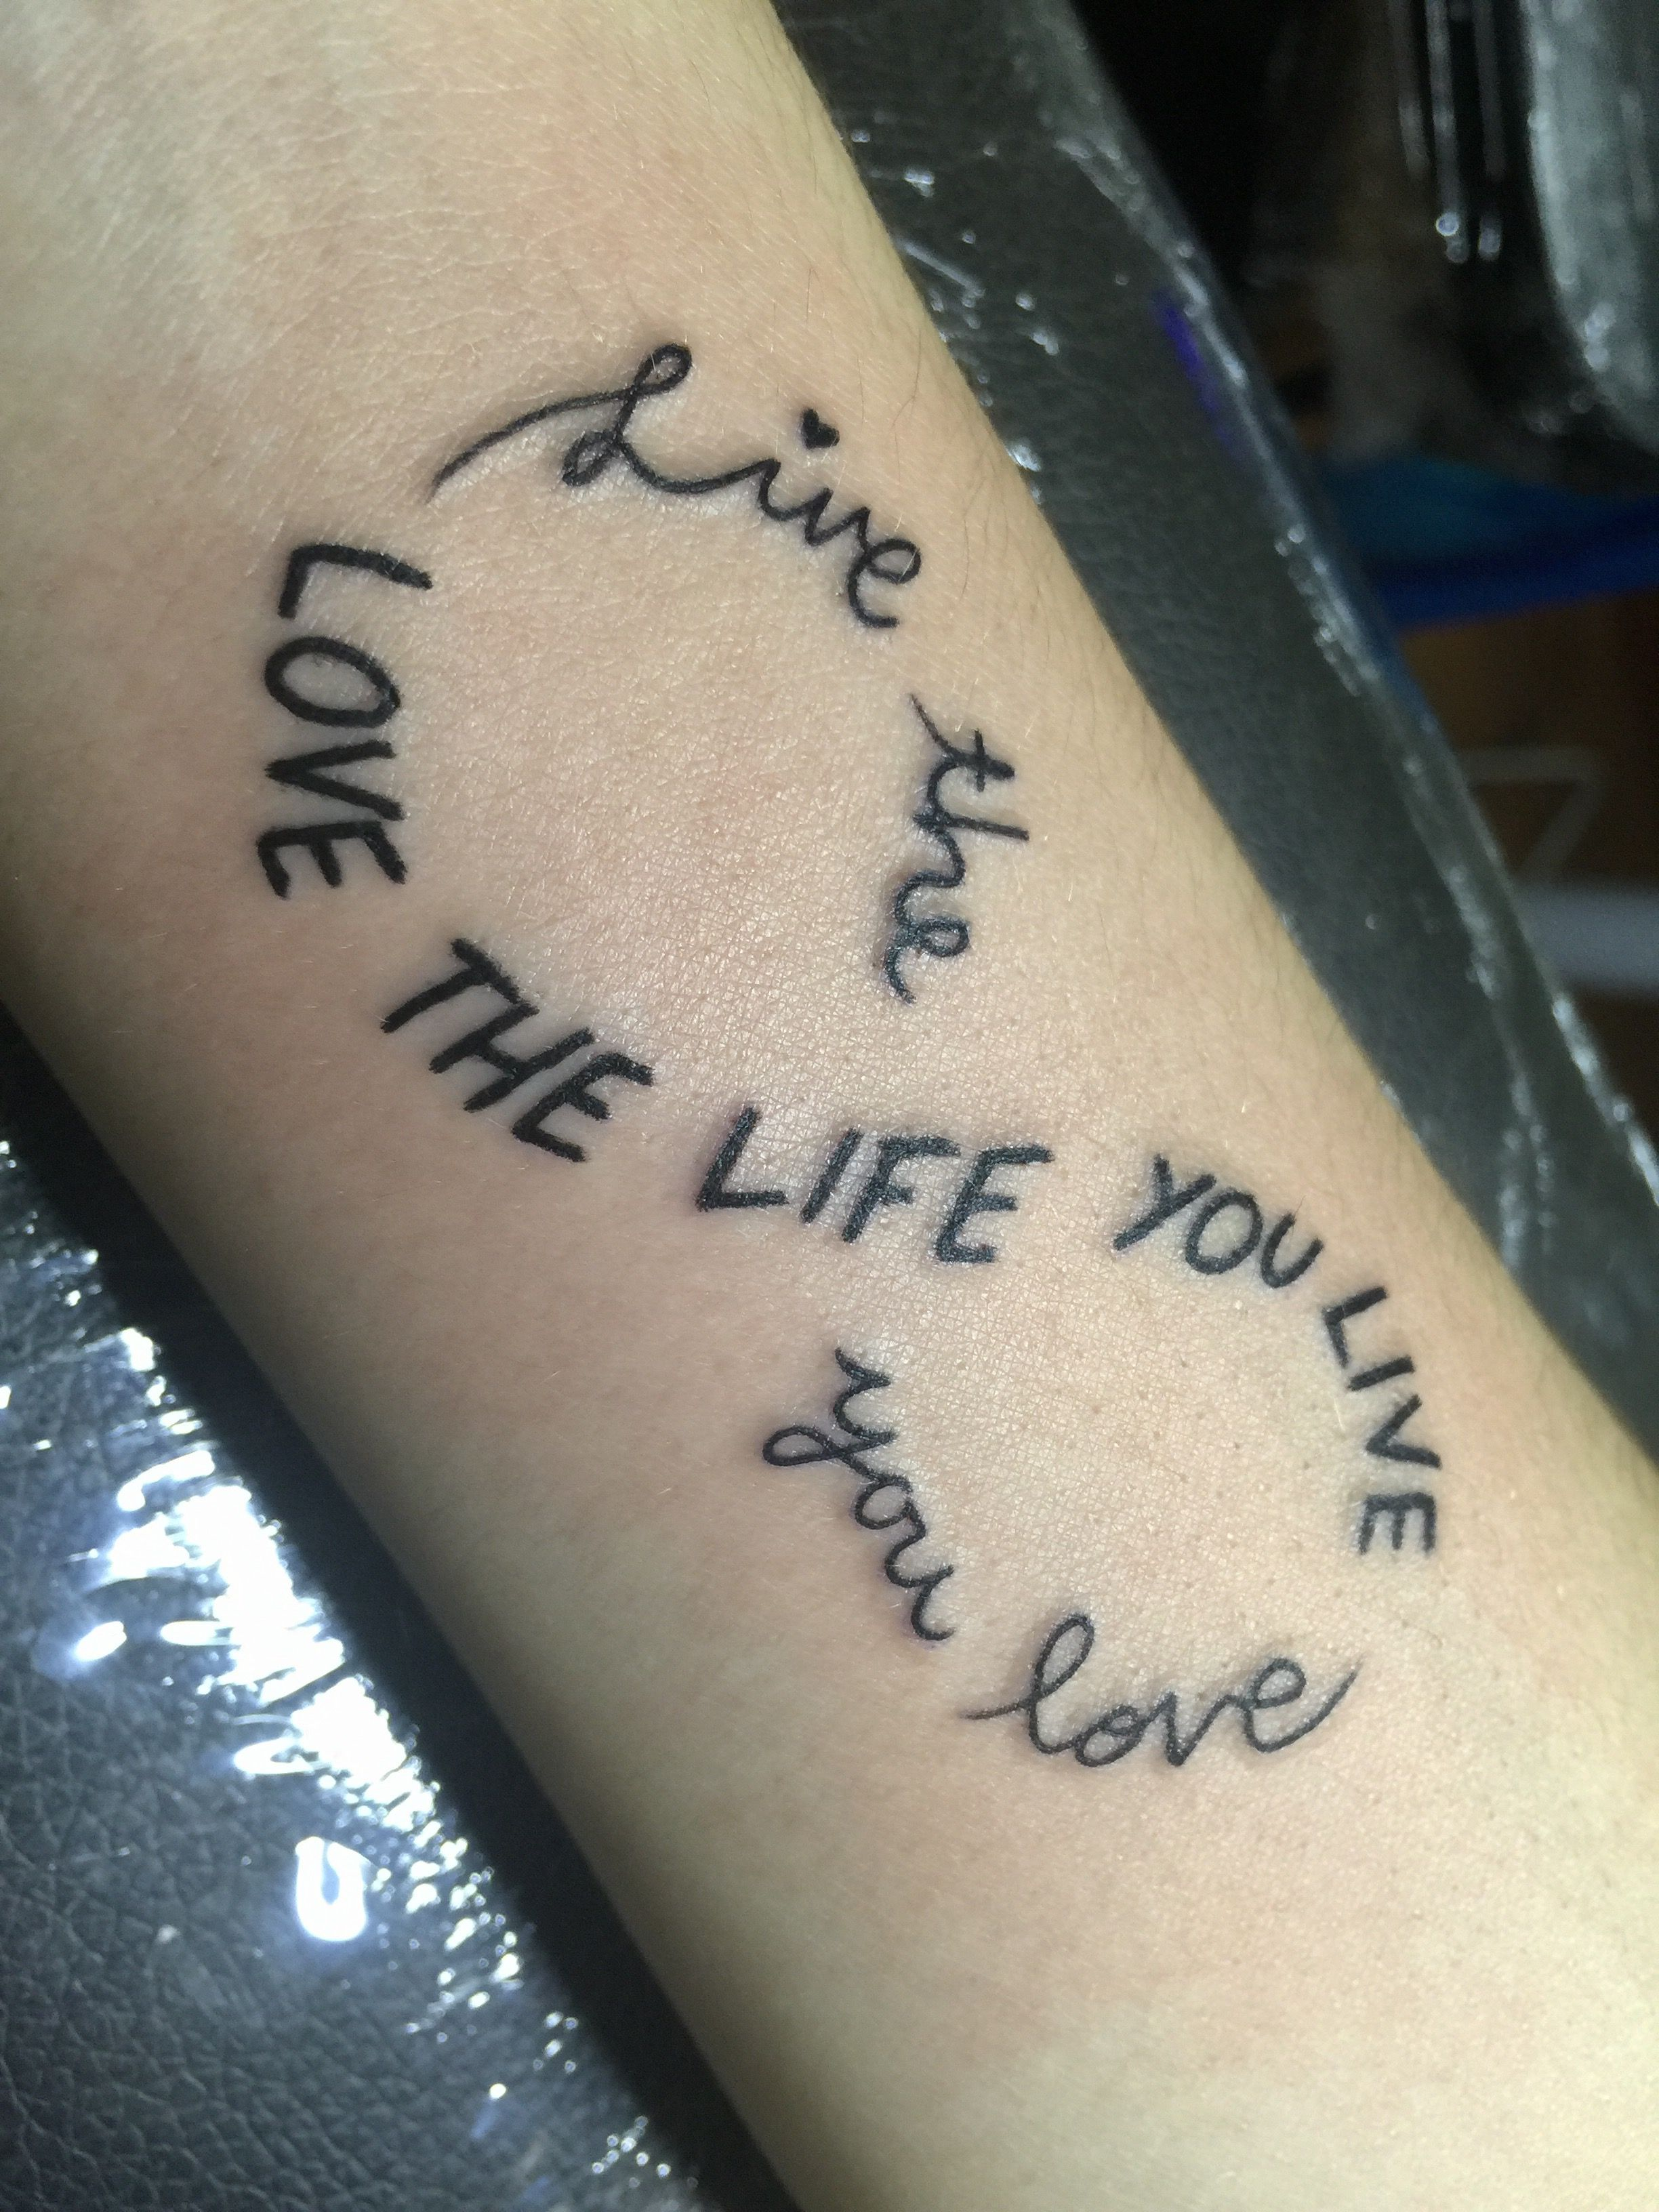 Love The Life You Live Live The Life You Love With Images